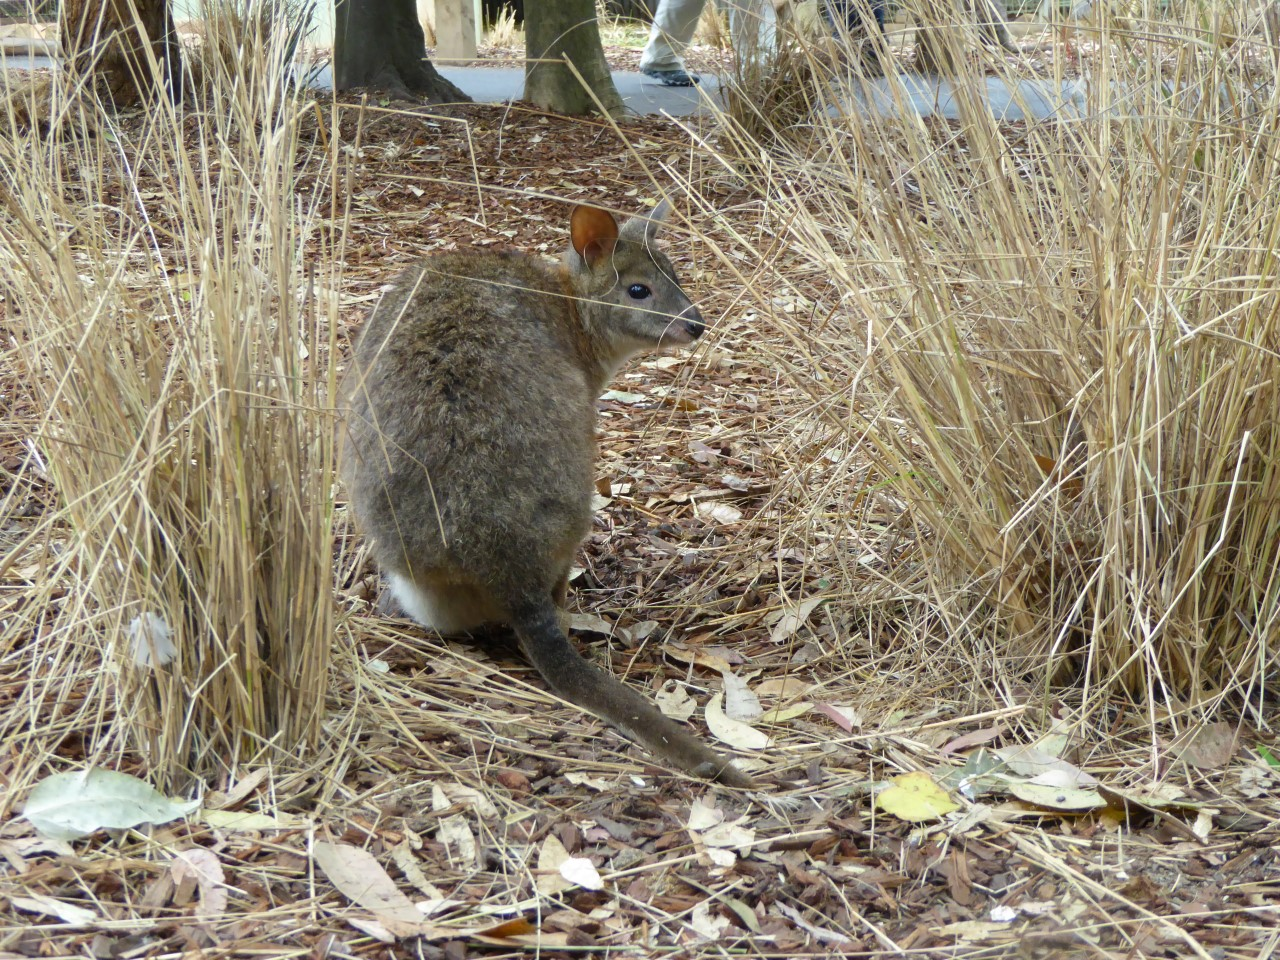 Wallaby at Featherdale wildlife park